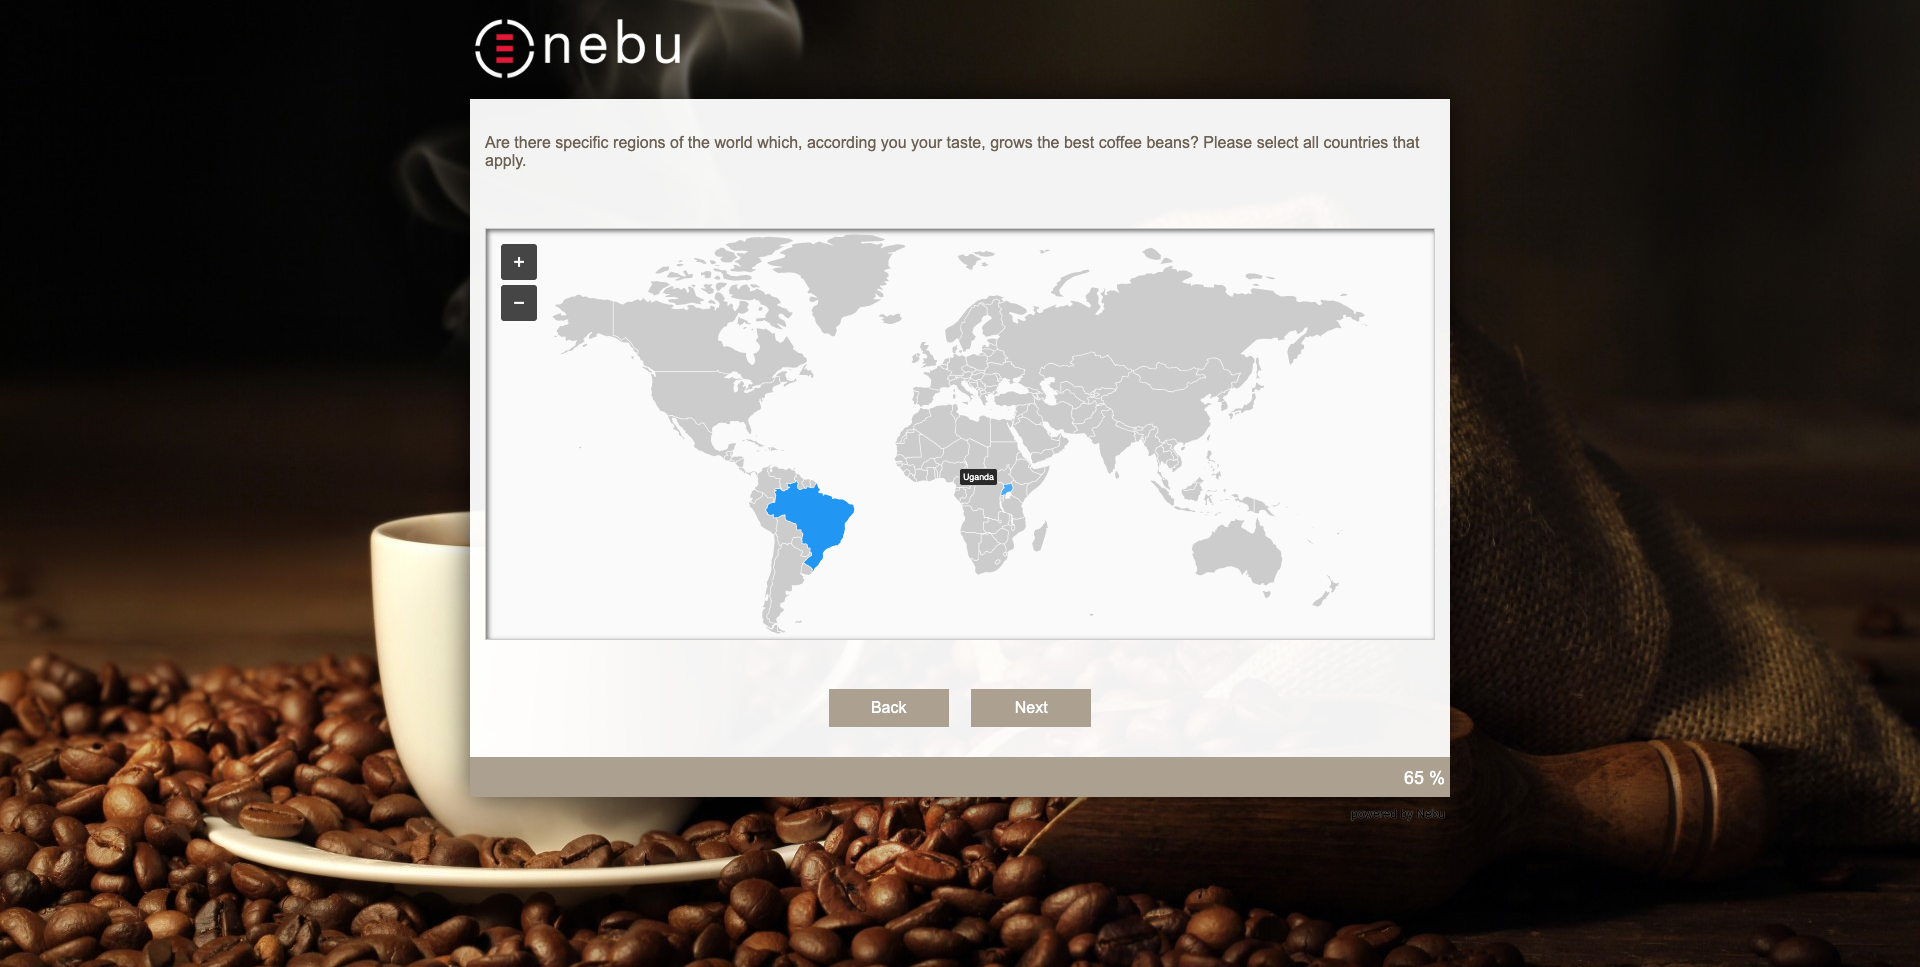 A Map Picker plugin implemented in one of Nebu's questionnaires